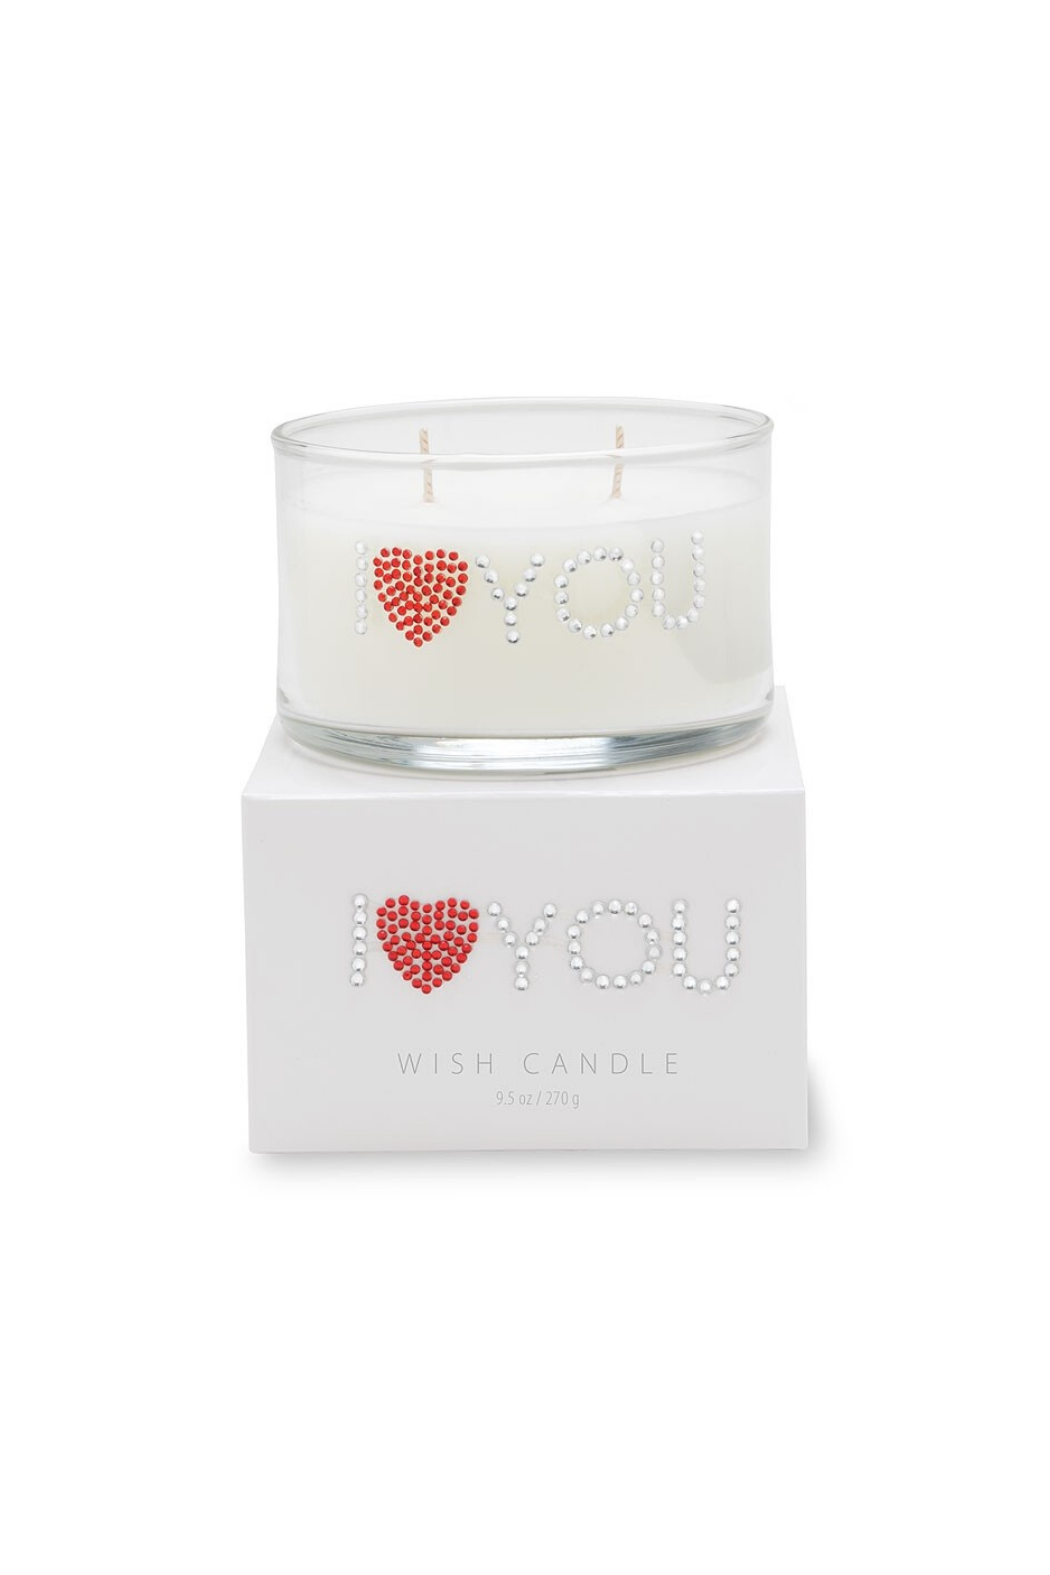 Primal Elements Wish Candle - I HEART YOU - Main Image